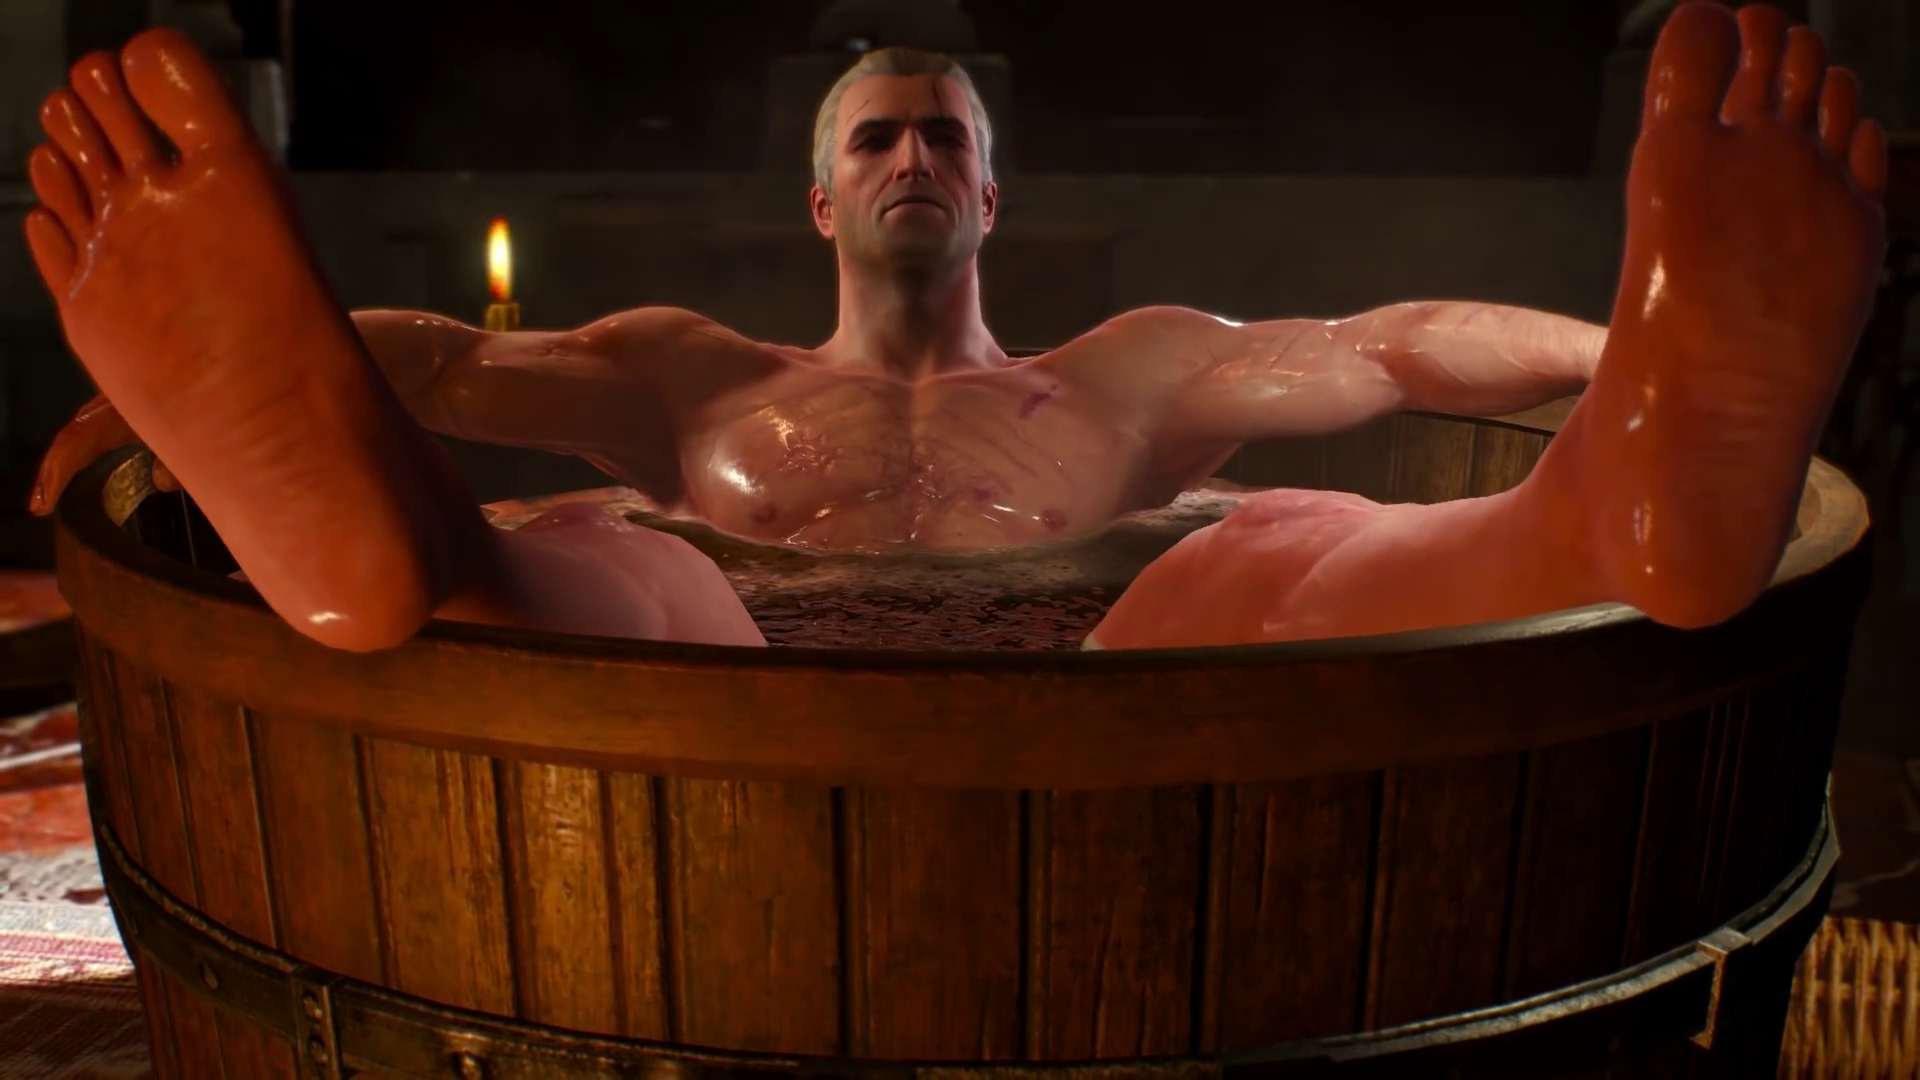 GOG is offering a free PC game and 70 percent off The Witcher 3 in a new 'Hot Sale'